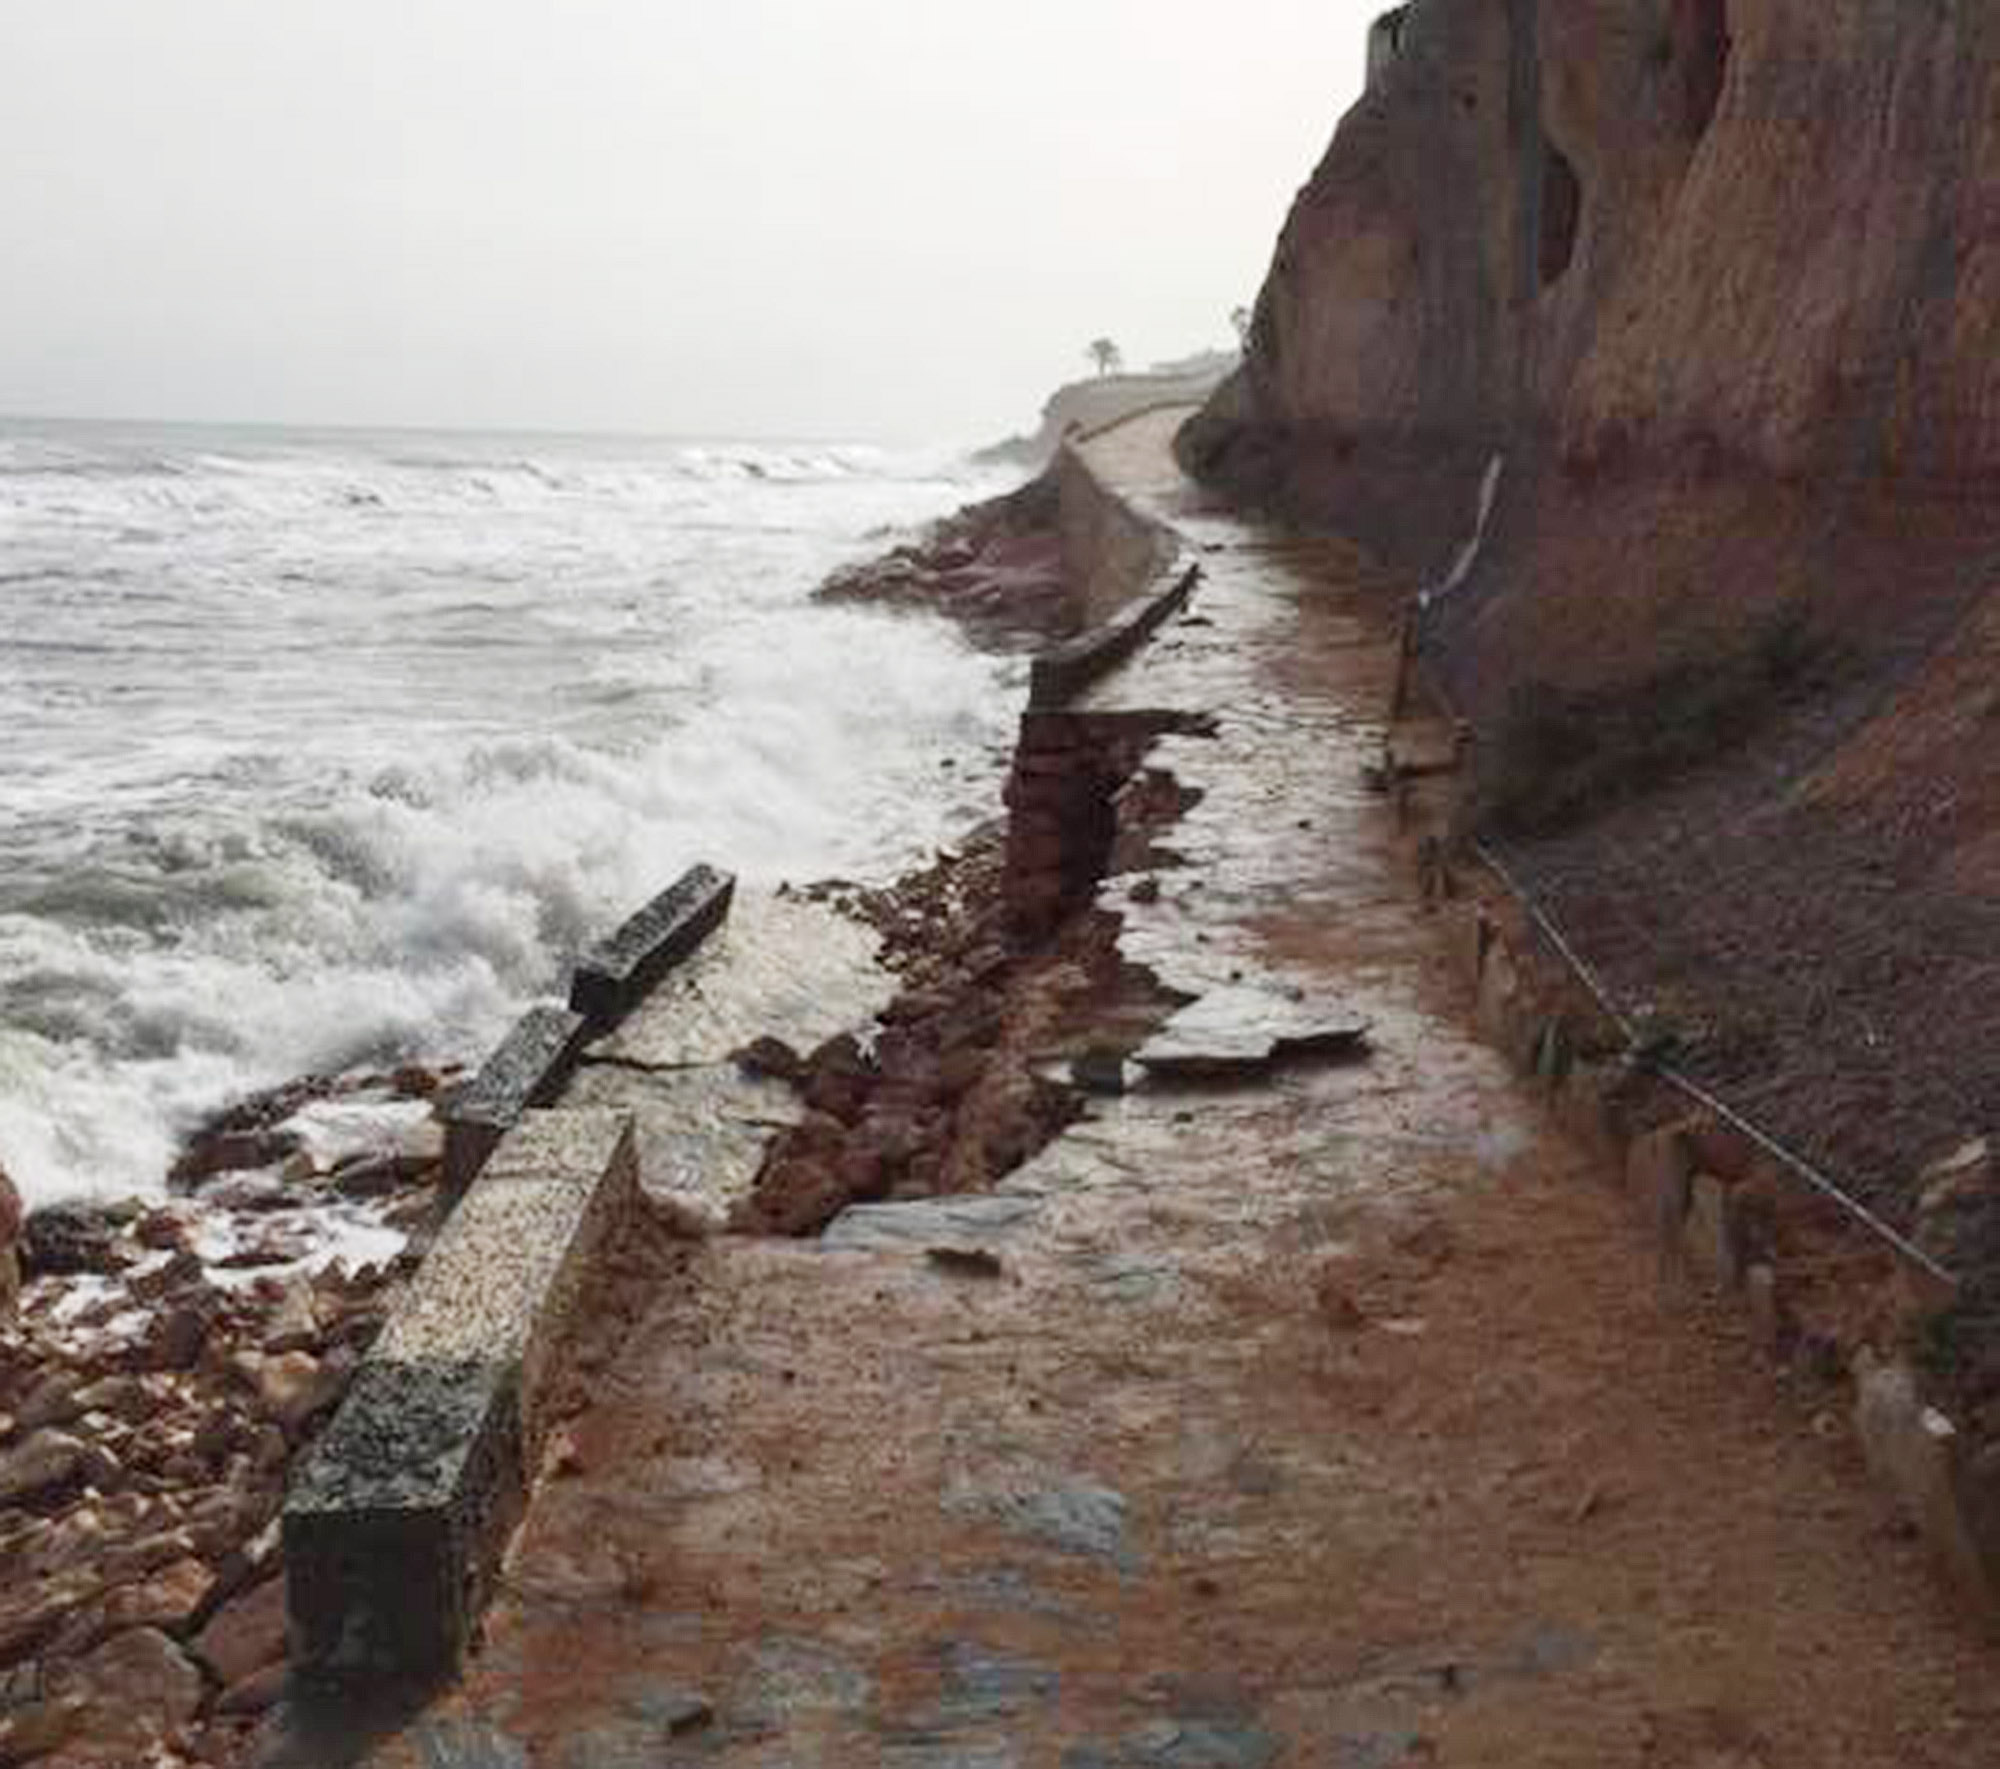 The force of the waves also caused significant damage on the promenade between Cabo Roig and Cala Capitán in Orihuela Costa